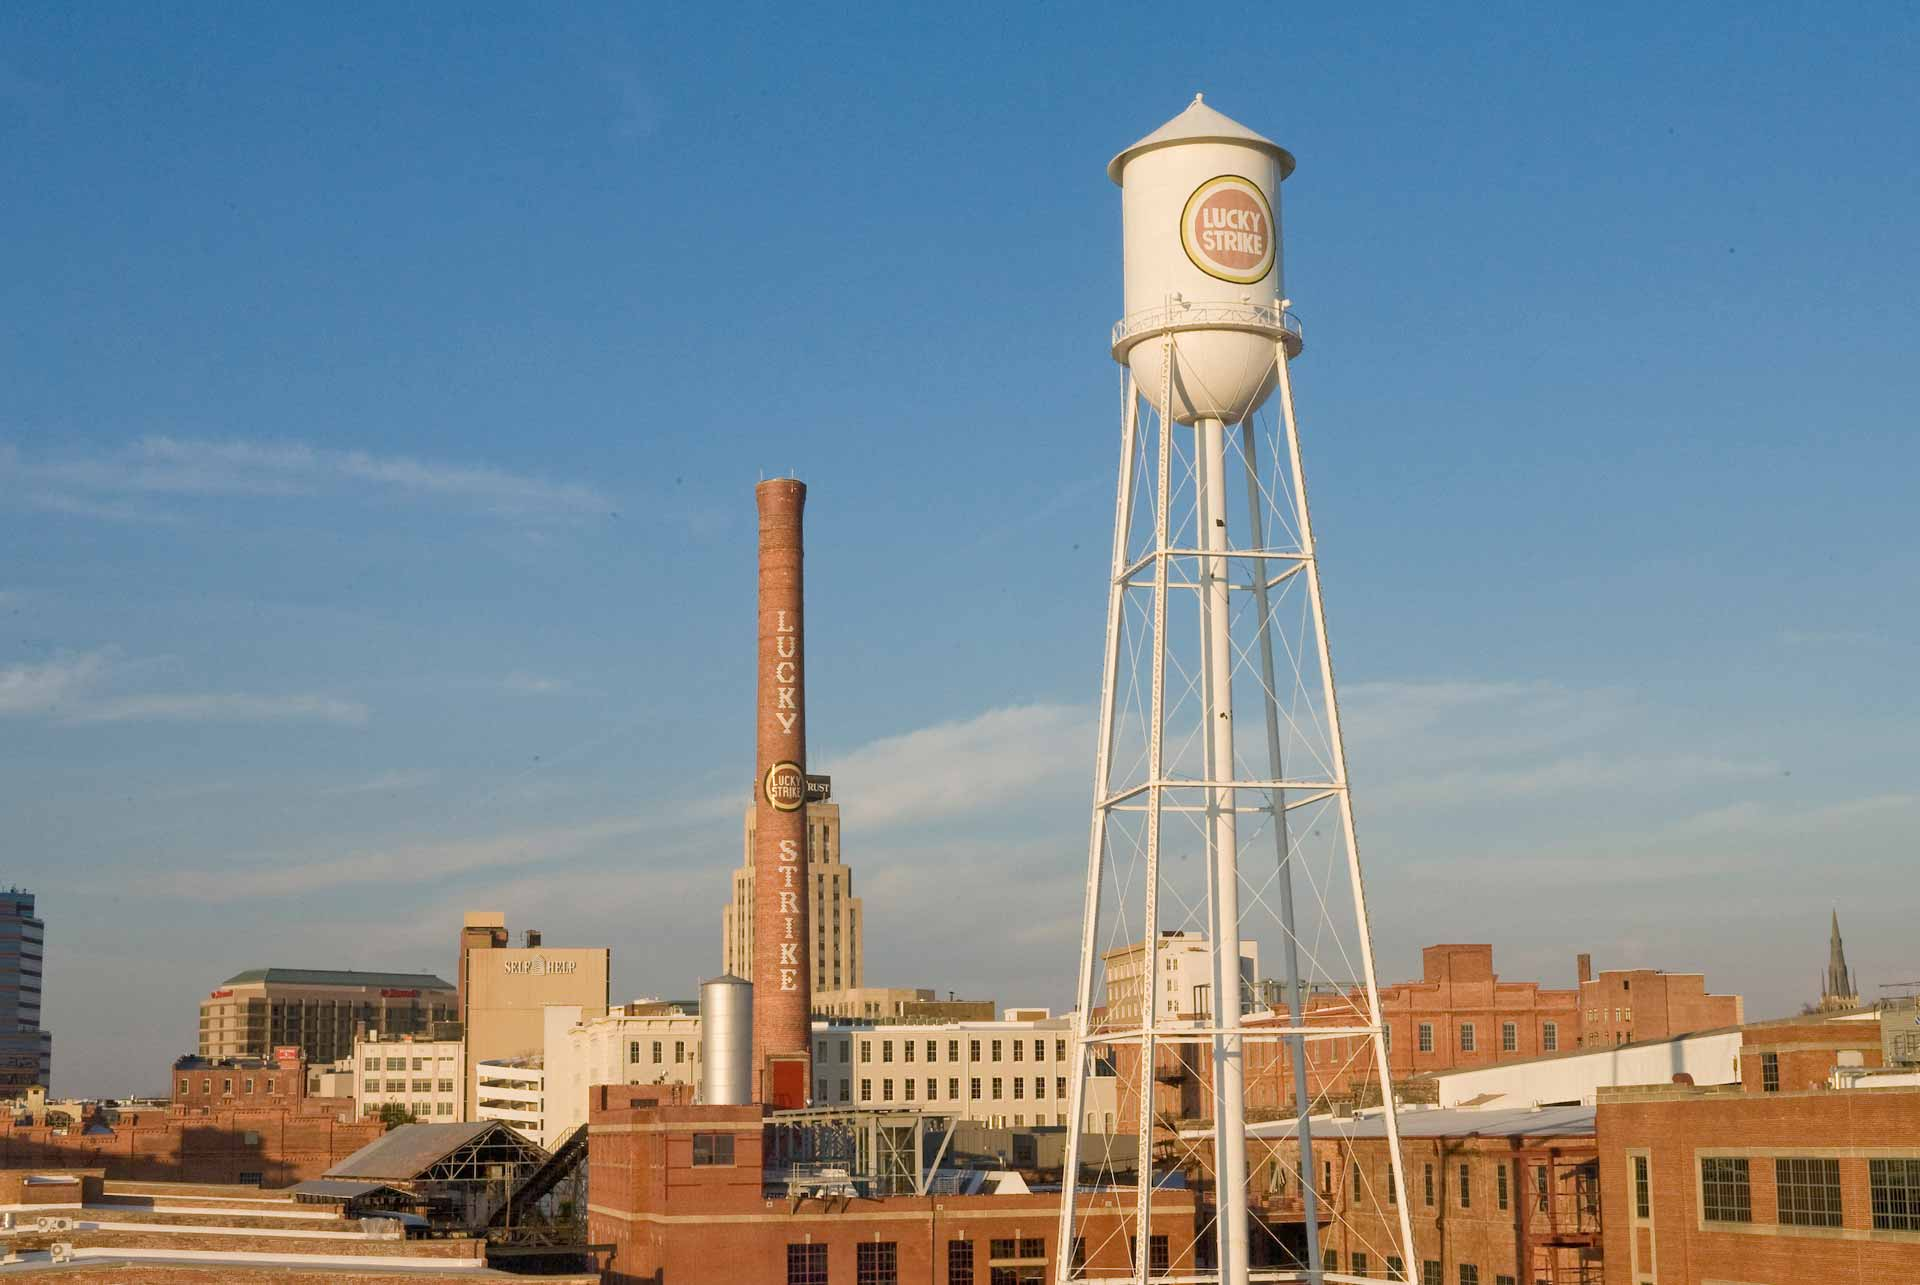 The Lucky Strike smokestack and water tower stand in the foreground against the downtown Durham skyline.